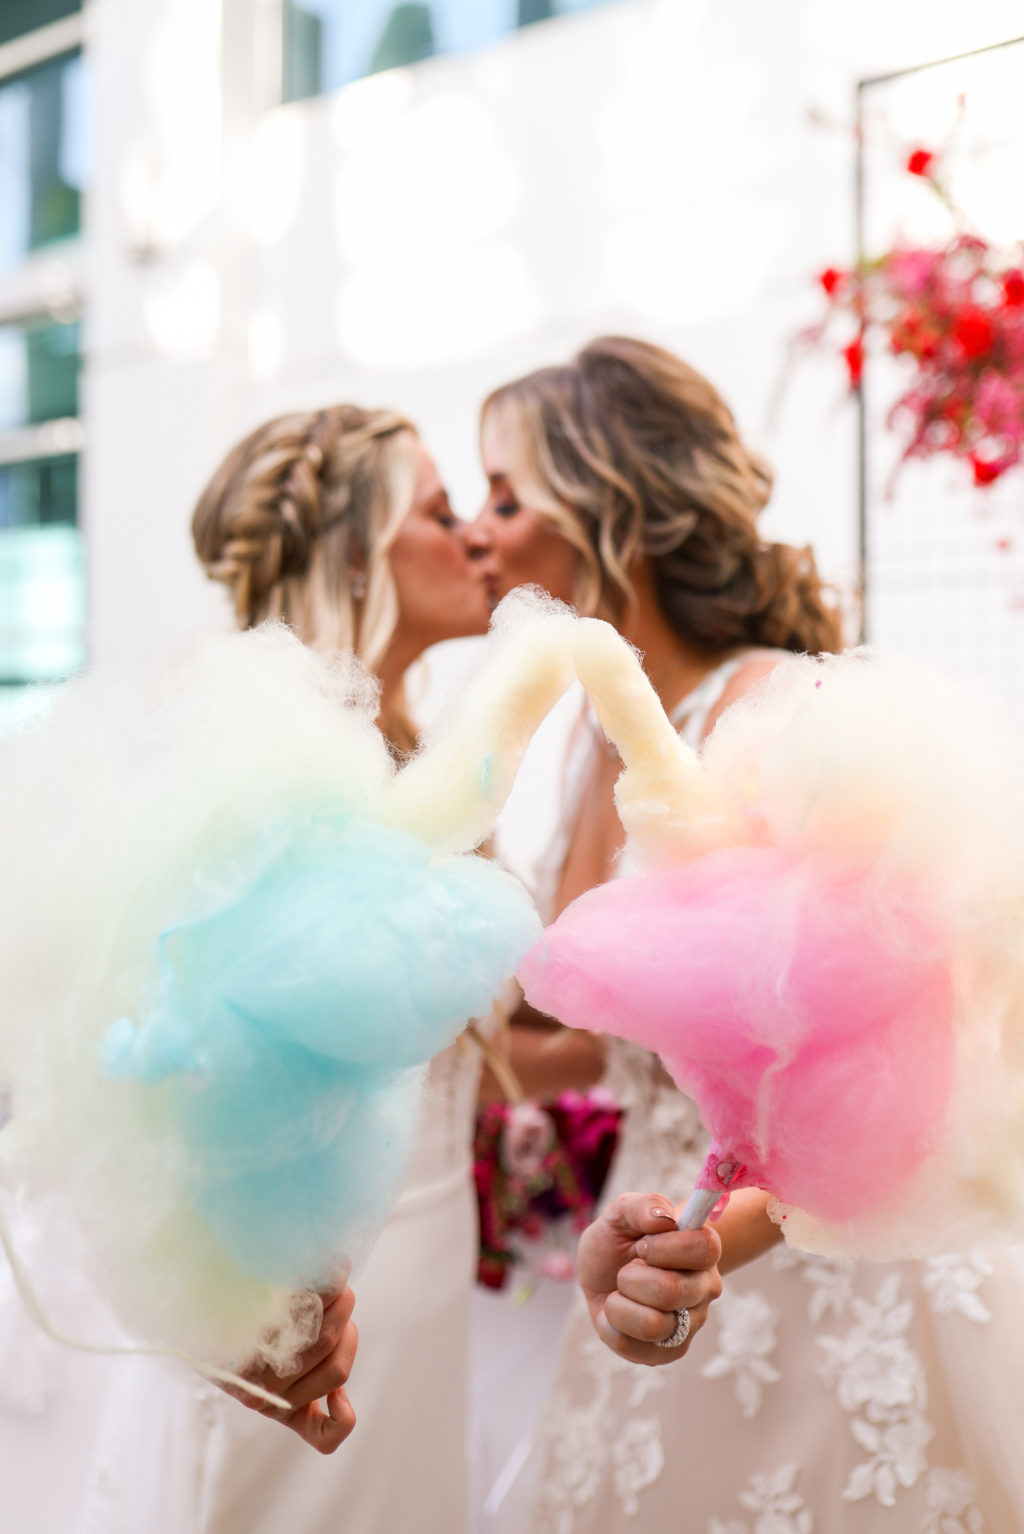 Modern Gay LGBTQ+ Pride Wedding, Lesbian Brides Kissing Holding Pink and Blue Cotton Candy   Tampa Bay Wedding Planner Stephany Perry Events